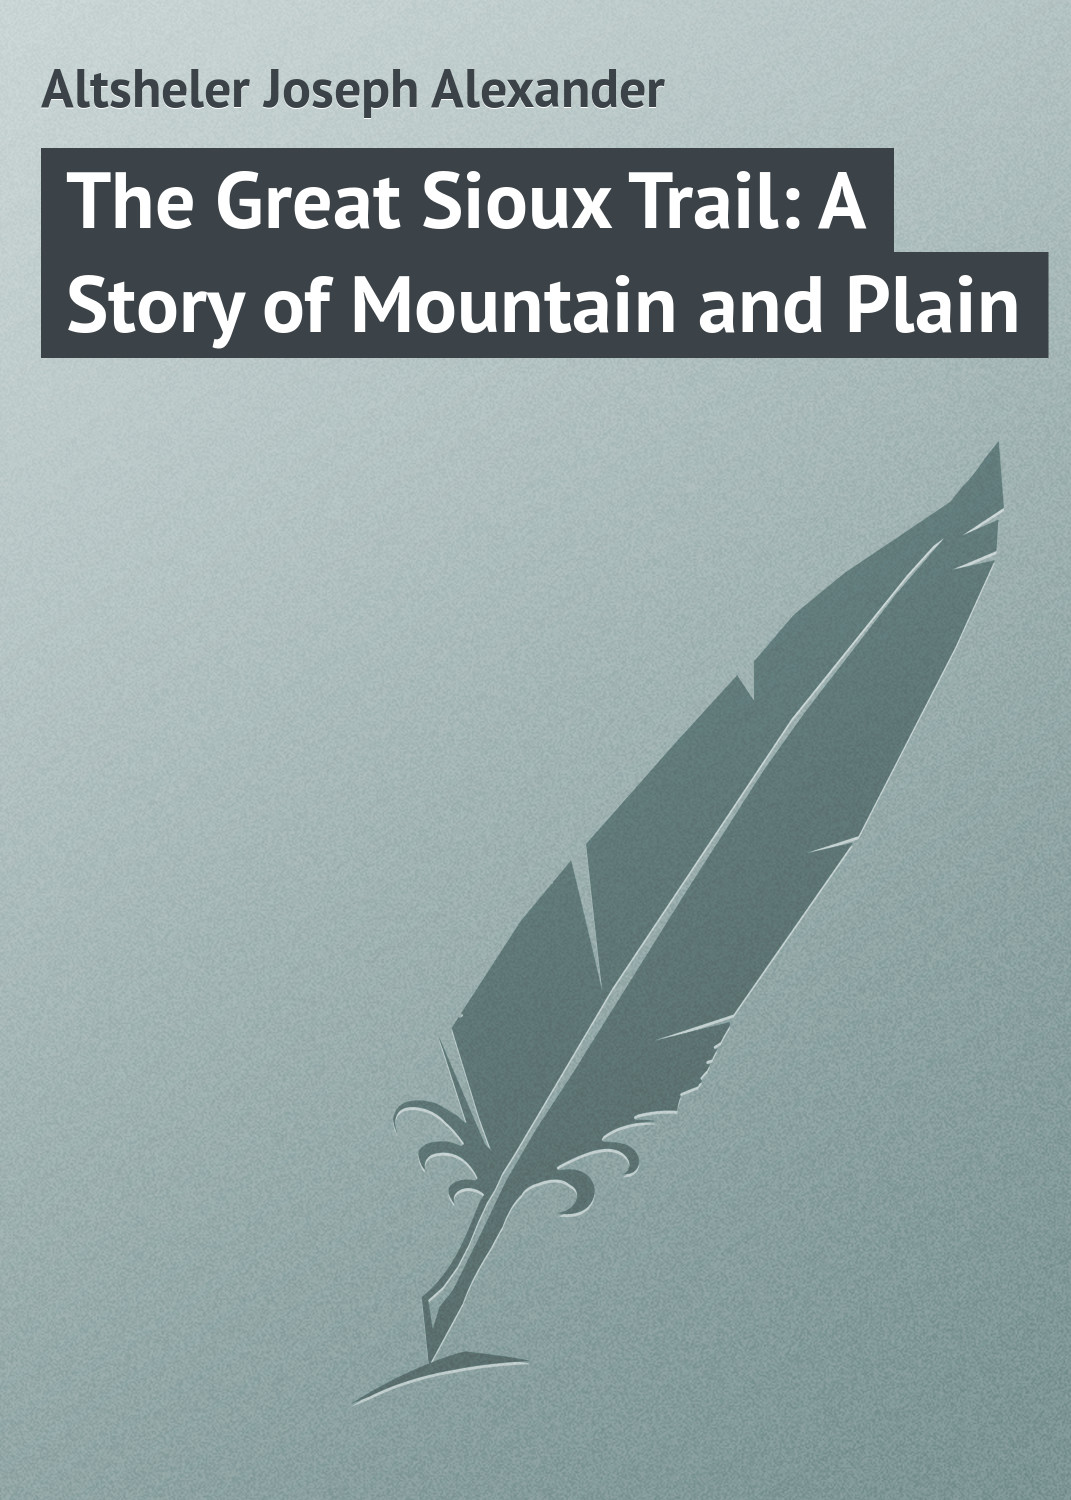 Altsheler Joseph Alexander The Great Sioux Trail: A Story of Mountain and Plain alexander the great